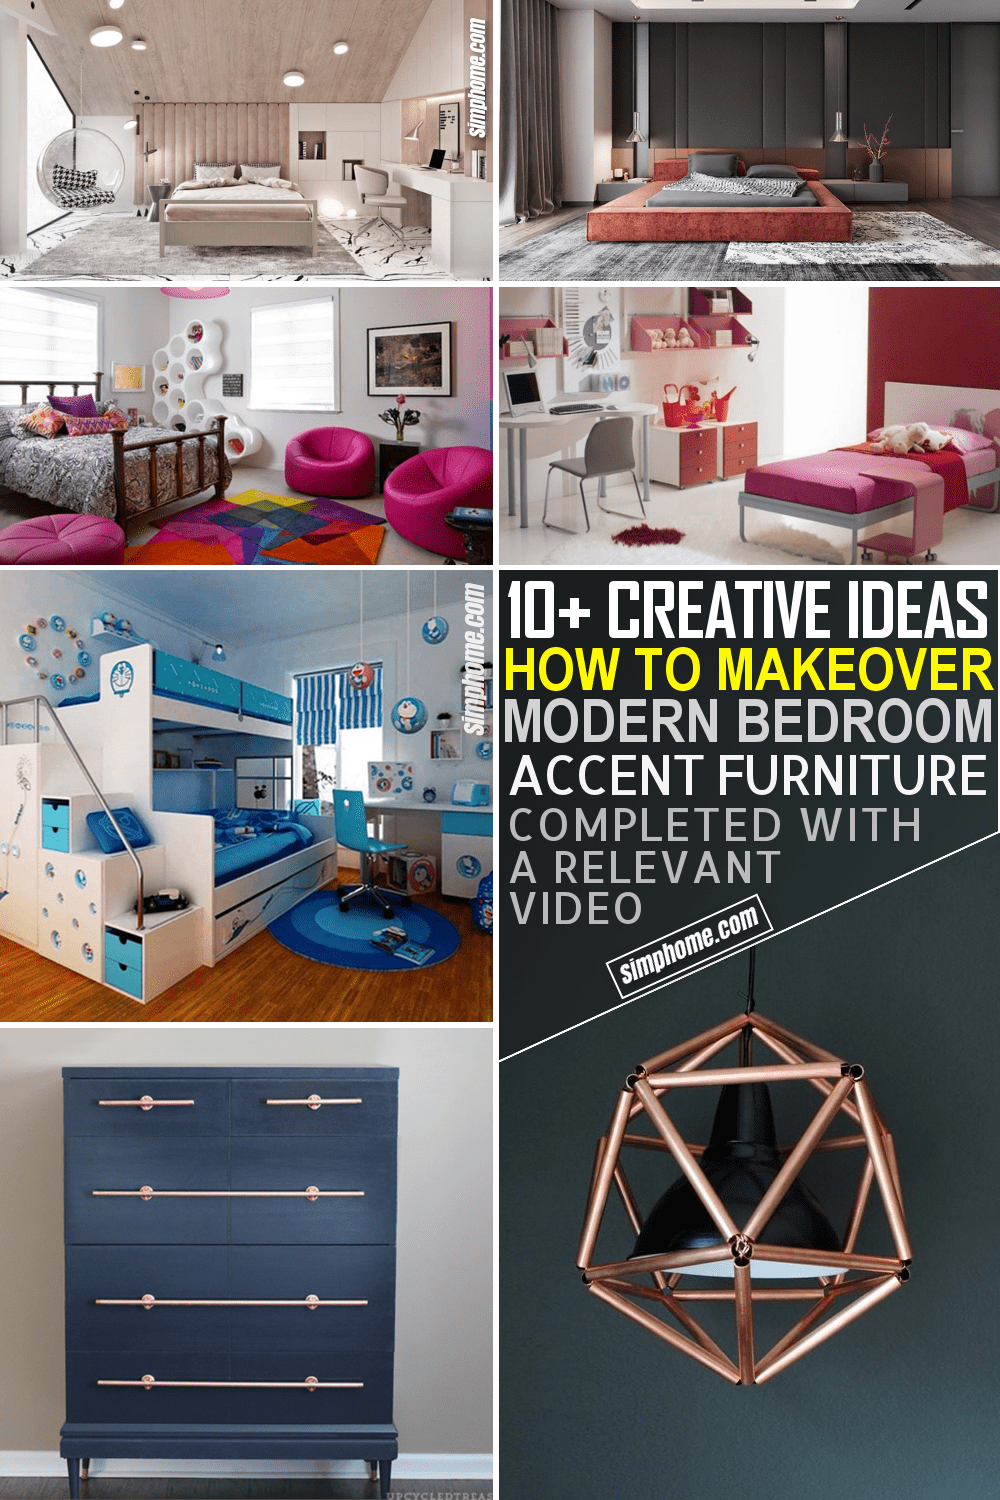 10 Modern Bedroom Accent Furniture Ideas by Simphome.com Featured Image